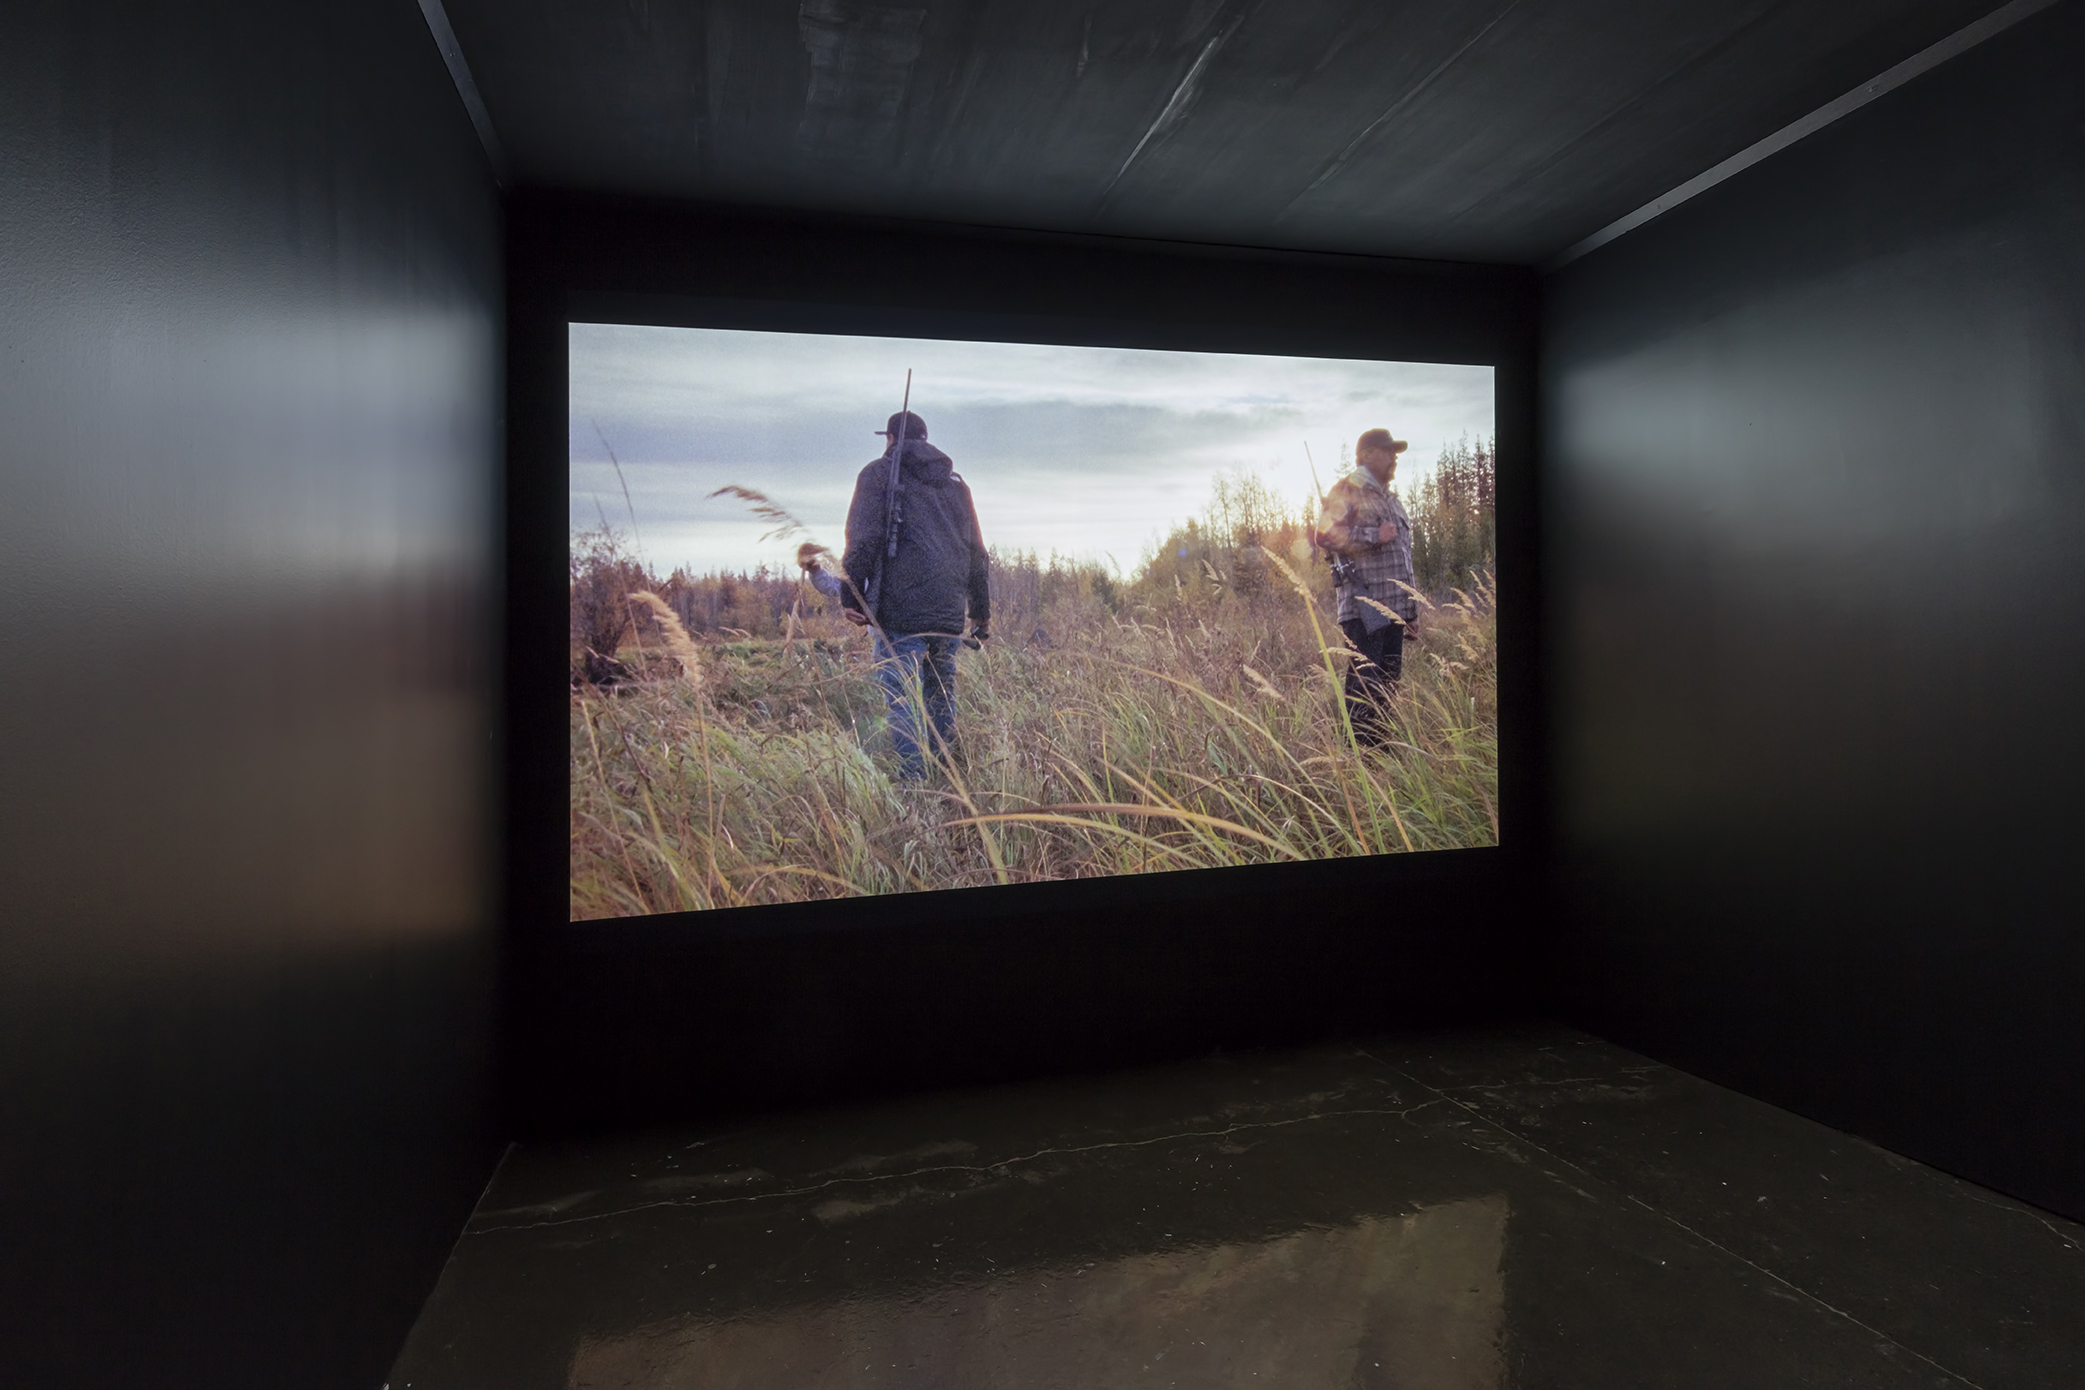 Brian Jungen and Duane Linklater, Modest Livelihood , 2012, Super 16mm transferred to HD Video (Silent) (Edition of 6), Courtesy of Catriona Jeffries Gallery. Installation View, Main Gallery, Art Gallery of Mississauga. Photo by Toni Hafkenscheid.